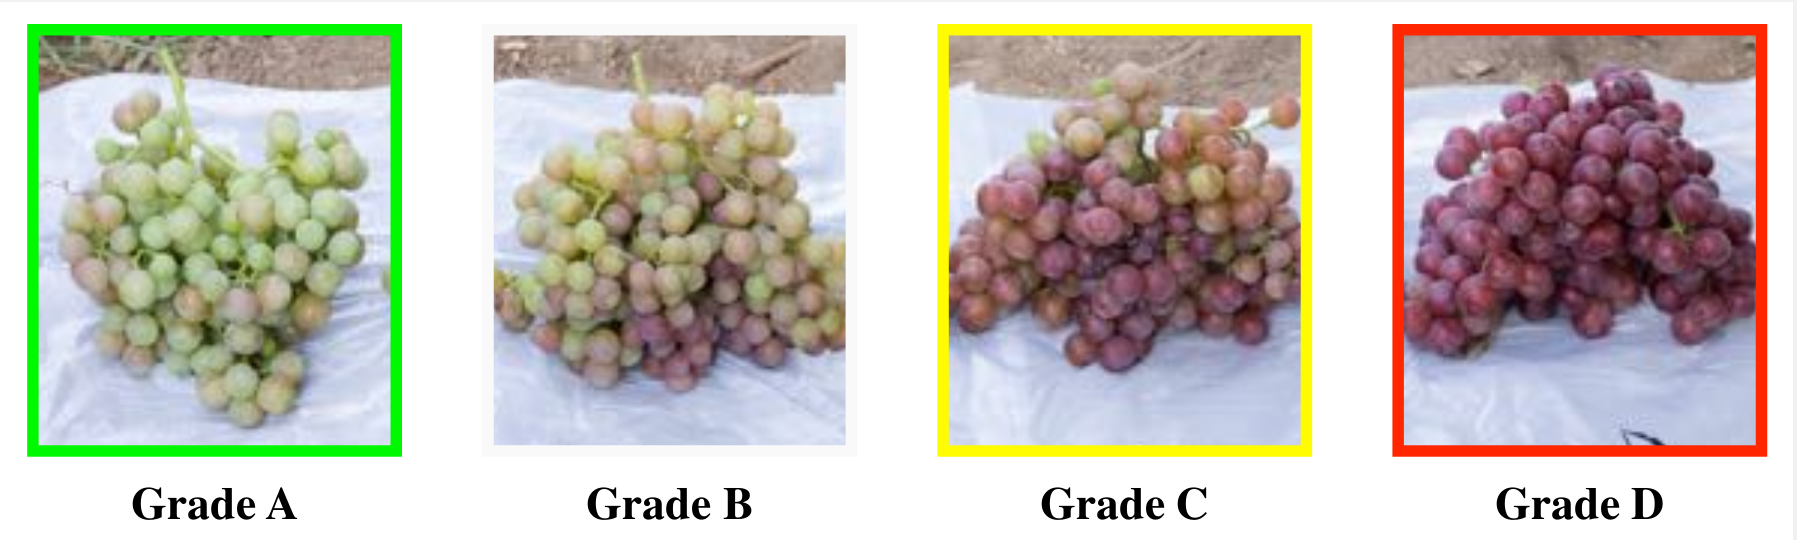 Figure 1: Grape clusters categorized into 4 grades depending on their color development.